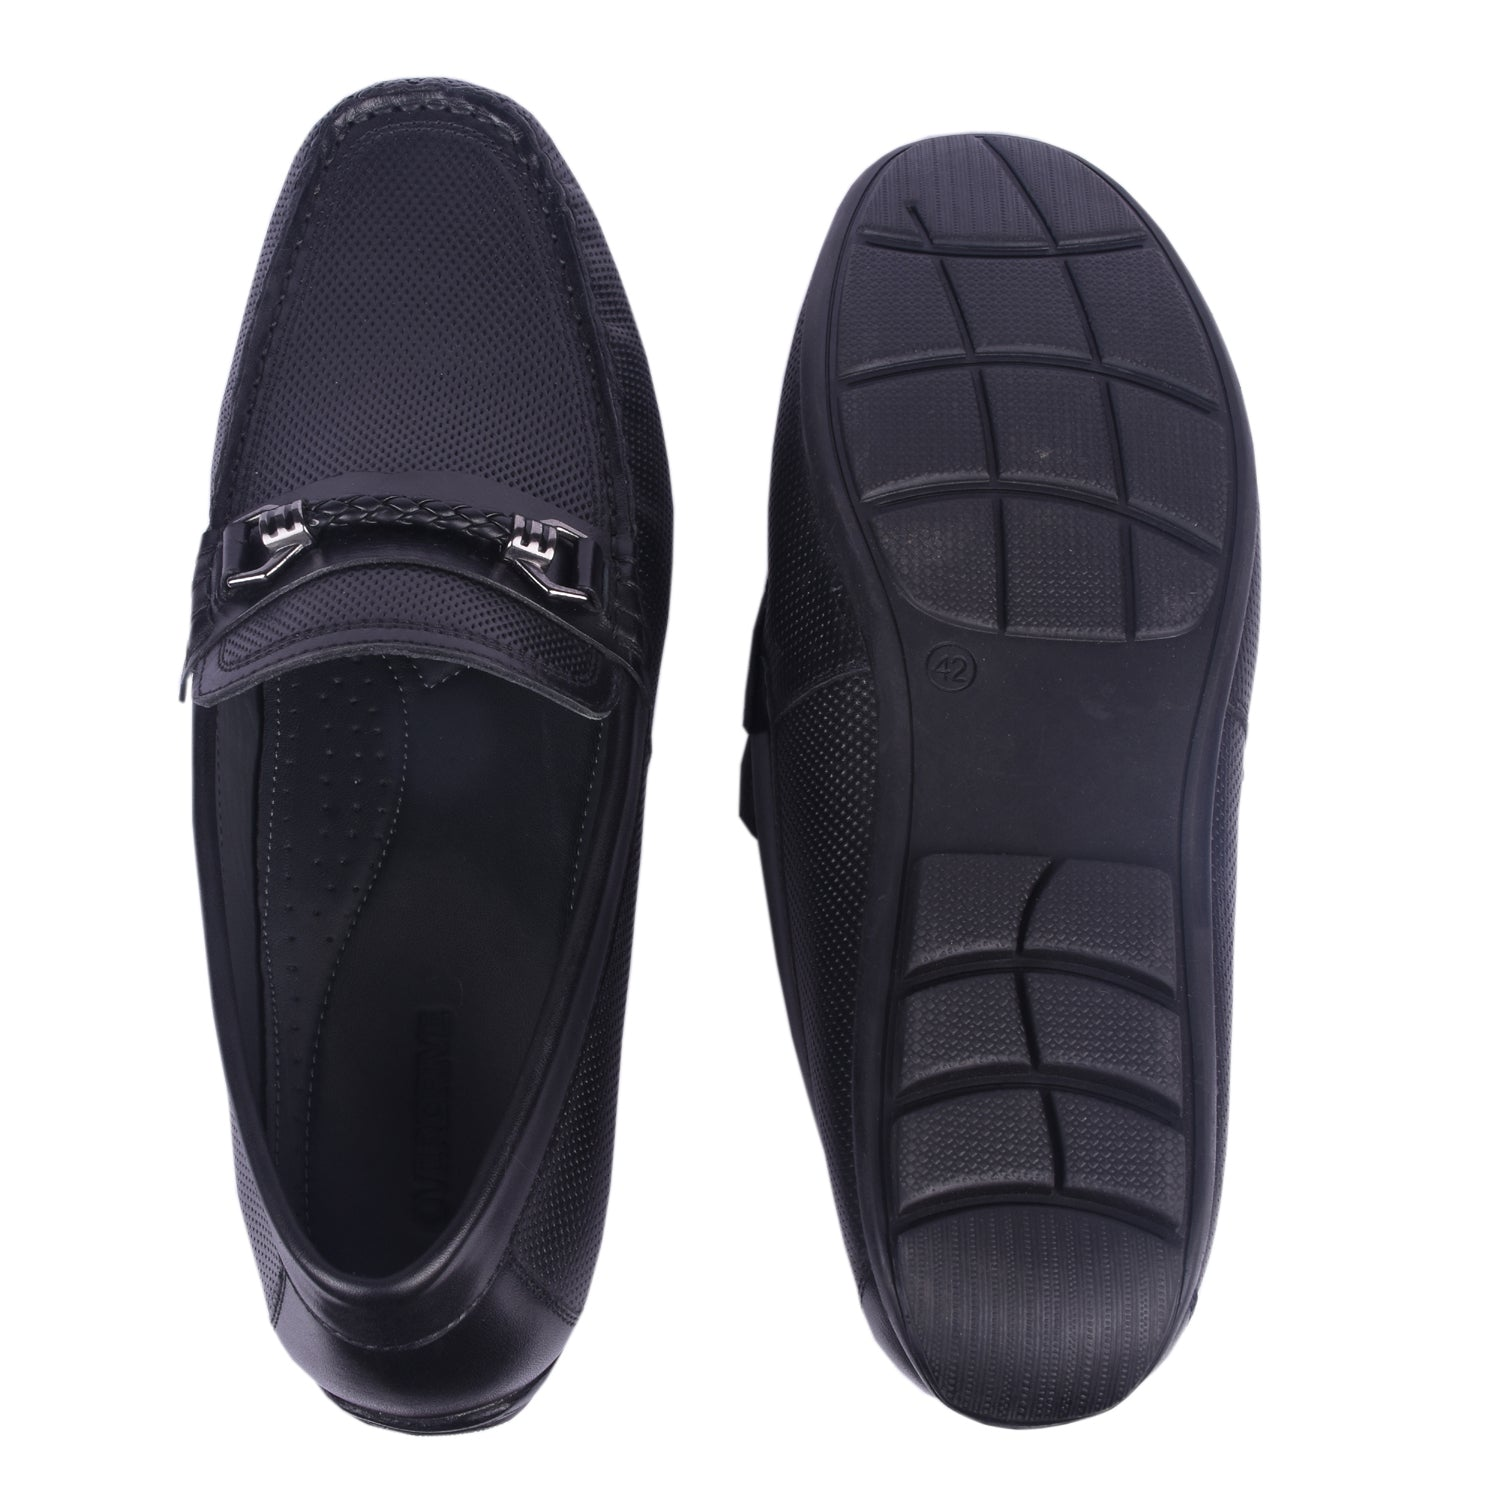 Rain Man Black Buckle Loafers